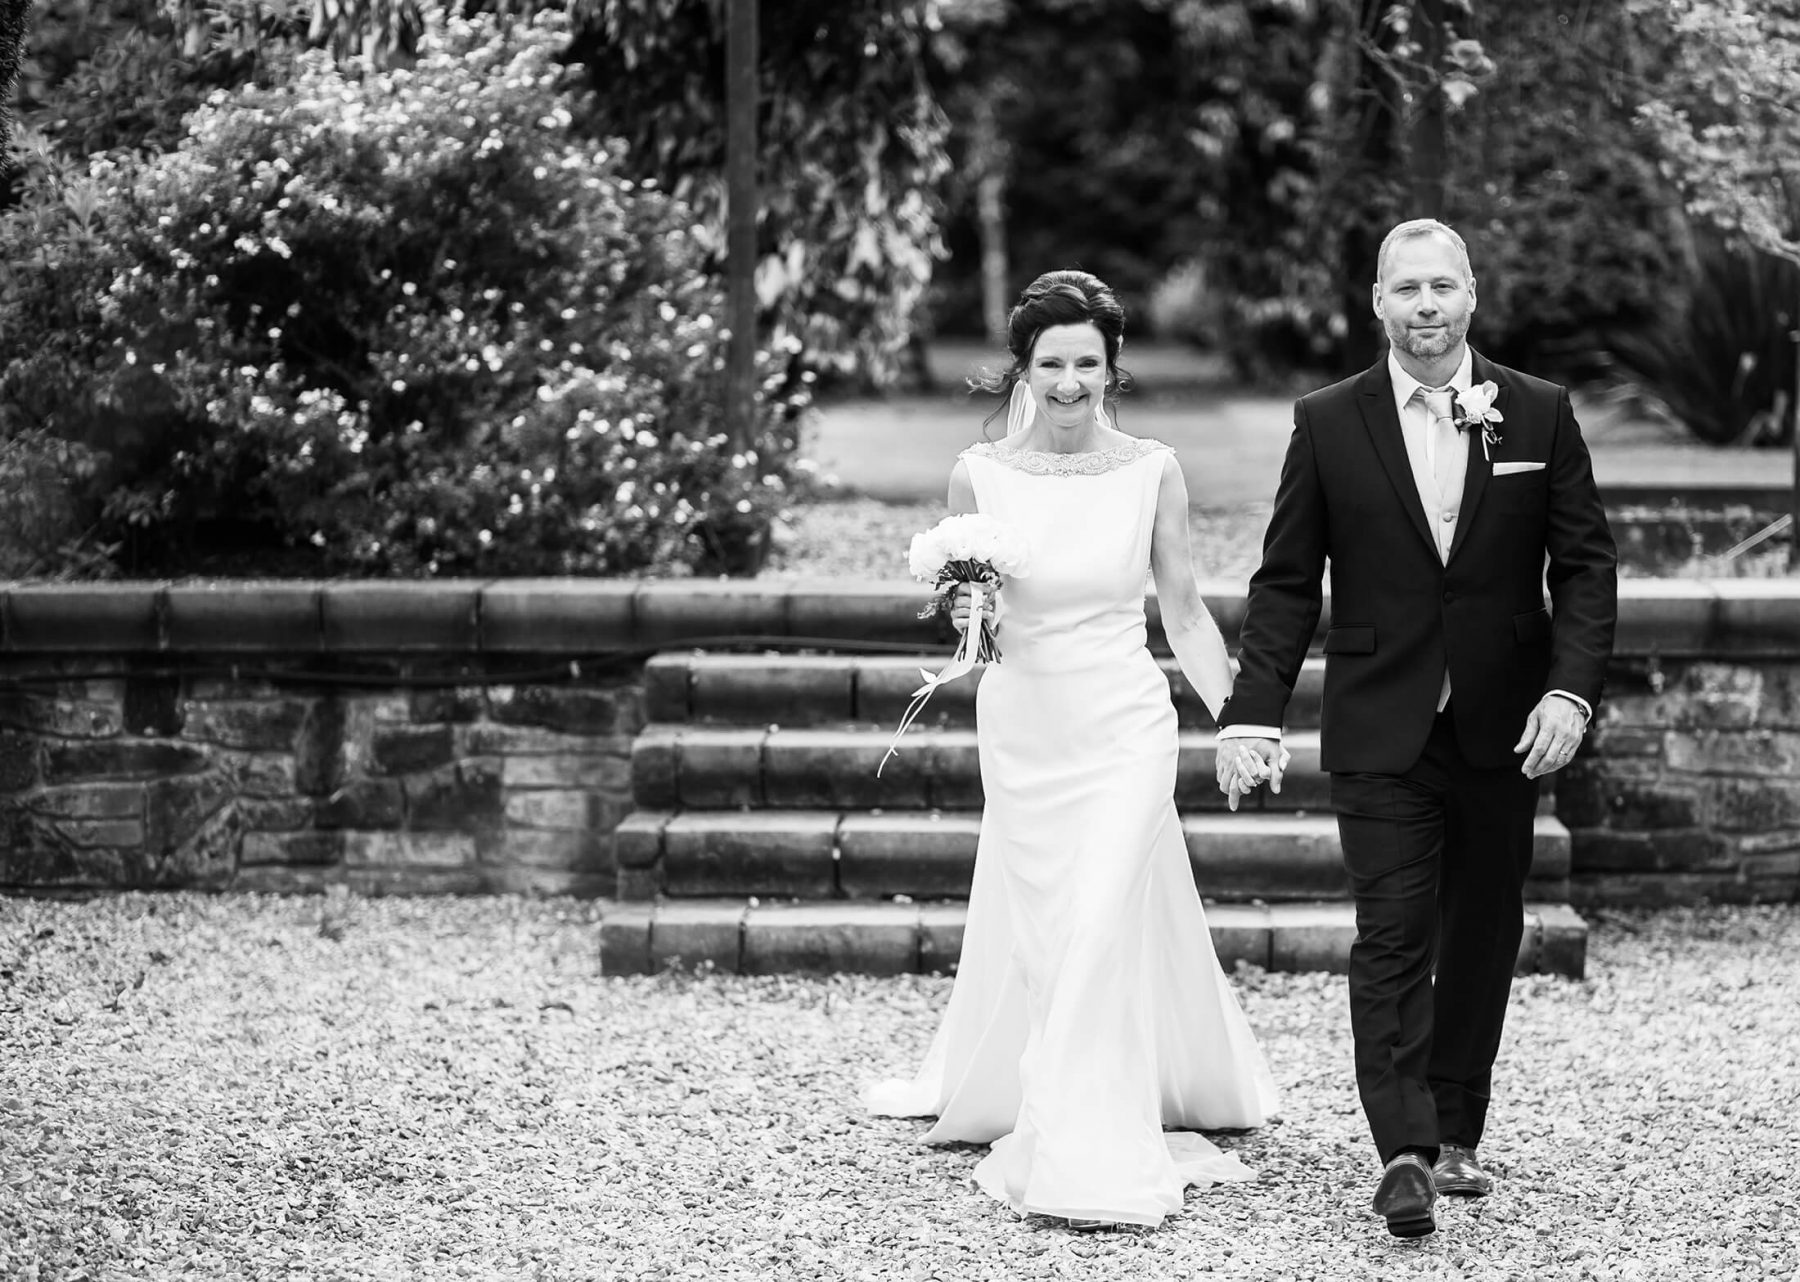 The bride and groom after their wedding ceremony